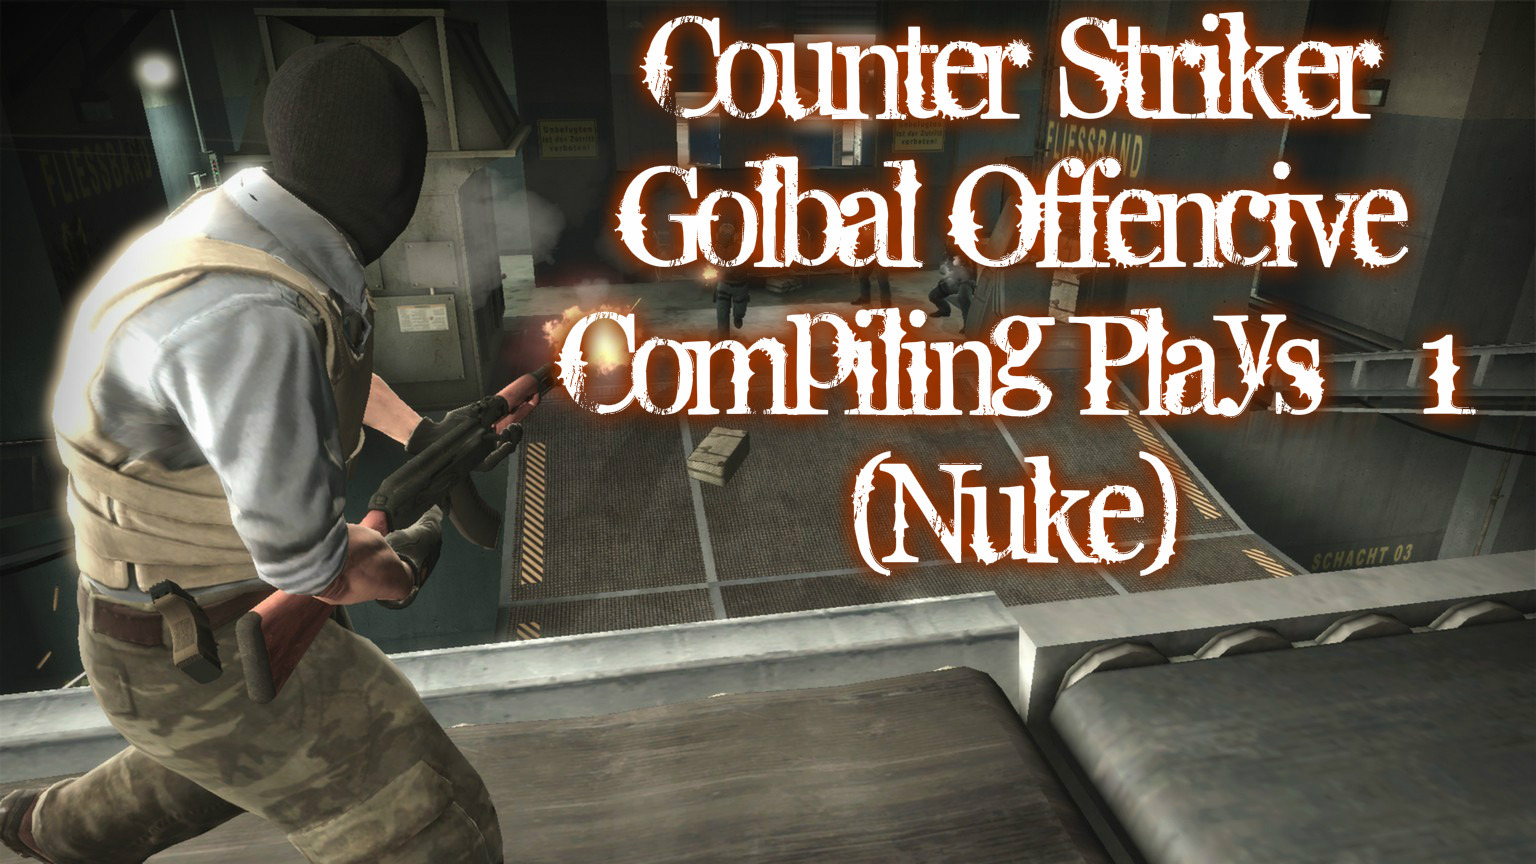 Counter Strike Global Offensive compiling plays # 1 (Nuke)